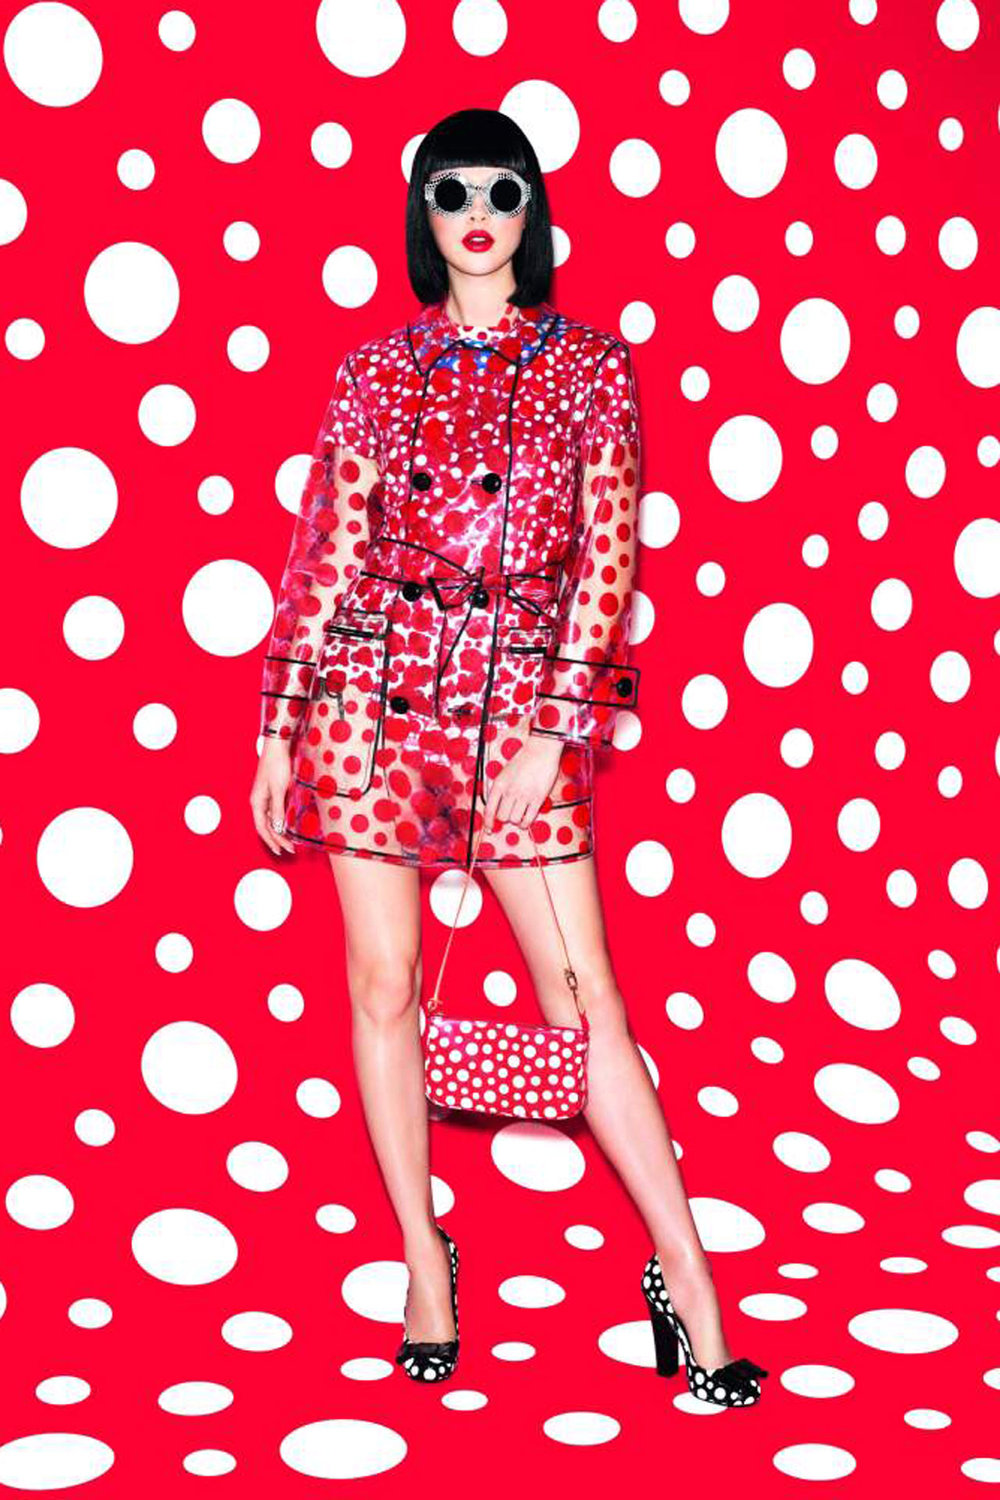 louis-vuitton-x-yayoi-kusama-collection-10.jpeg